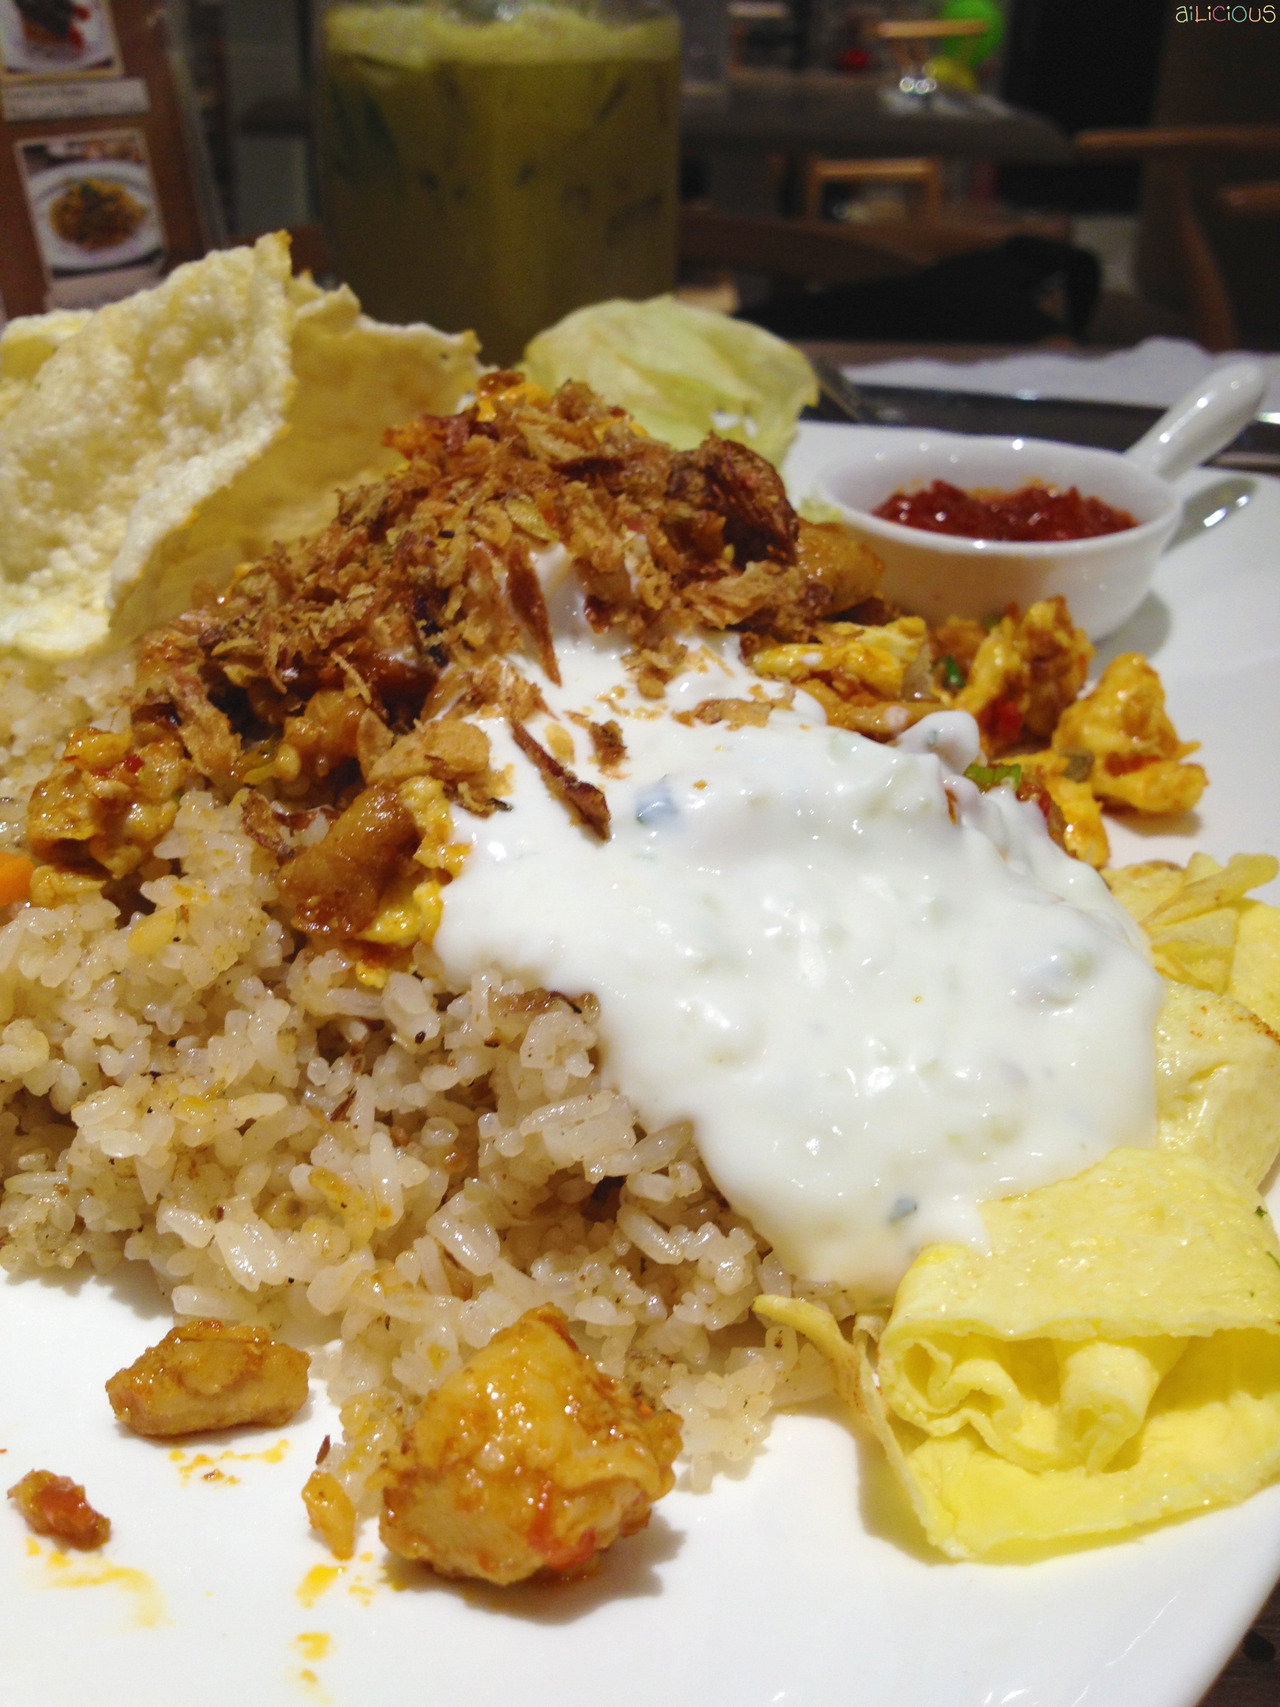 Sam & Jolly Na-Go-Yo! (Nasi Goreng Yogurt) - Fried rice with yogurt, surprisingly delicious! :D at first it thought it would taste weird and sour but turned out it was really tasty! A little bit spicy (yeah, we Indonesians do love spicy food) :p it comes with chicken, egg, emping, and sambal.